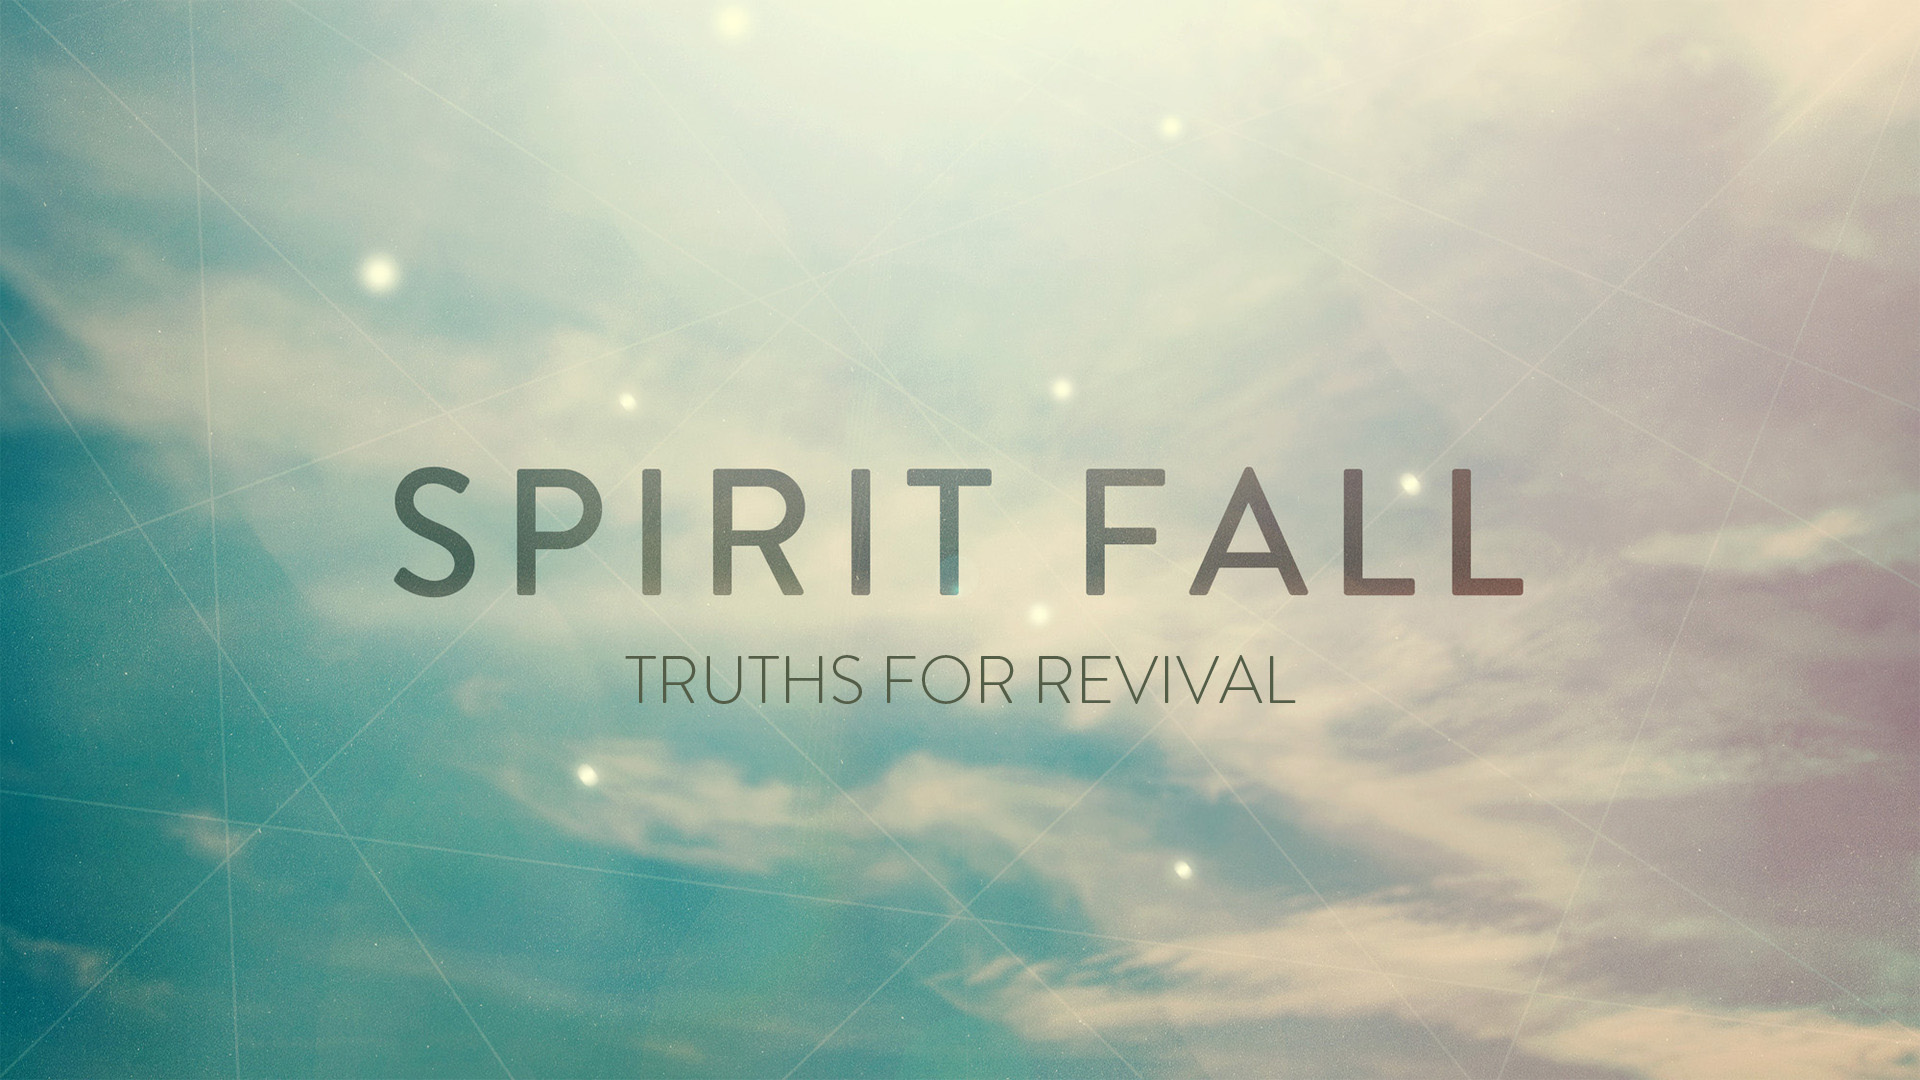 Revival Truths